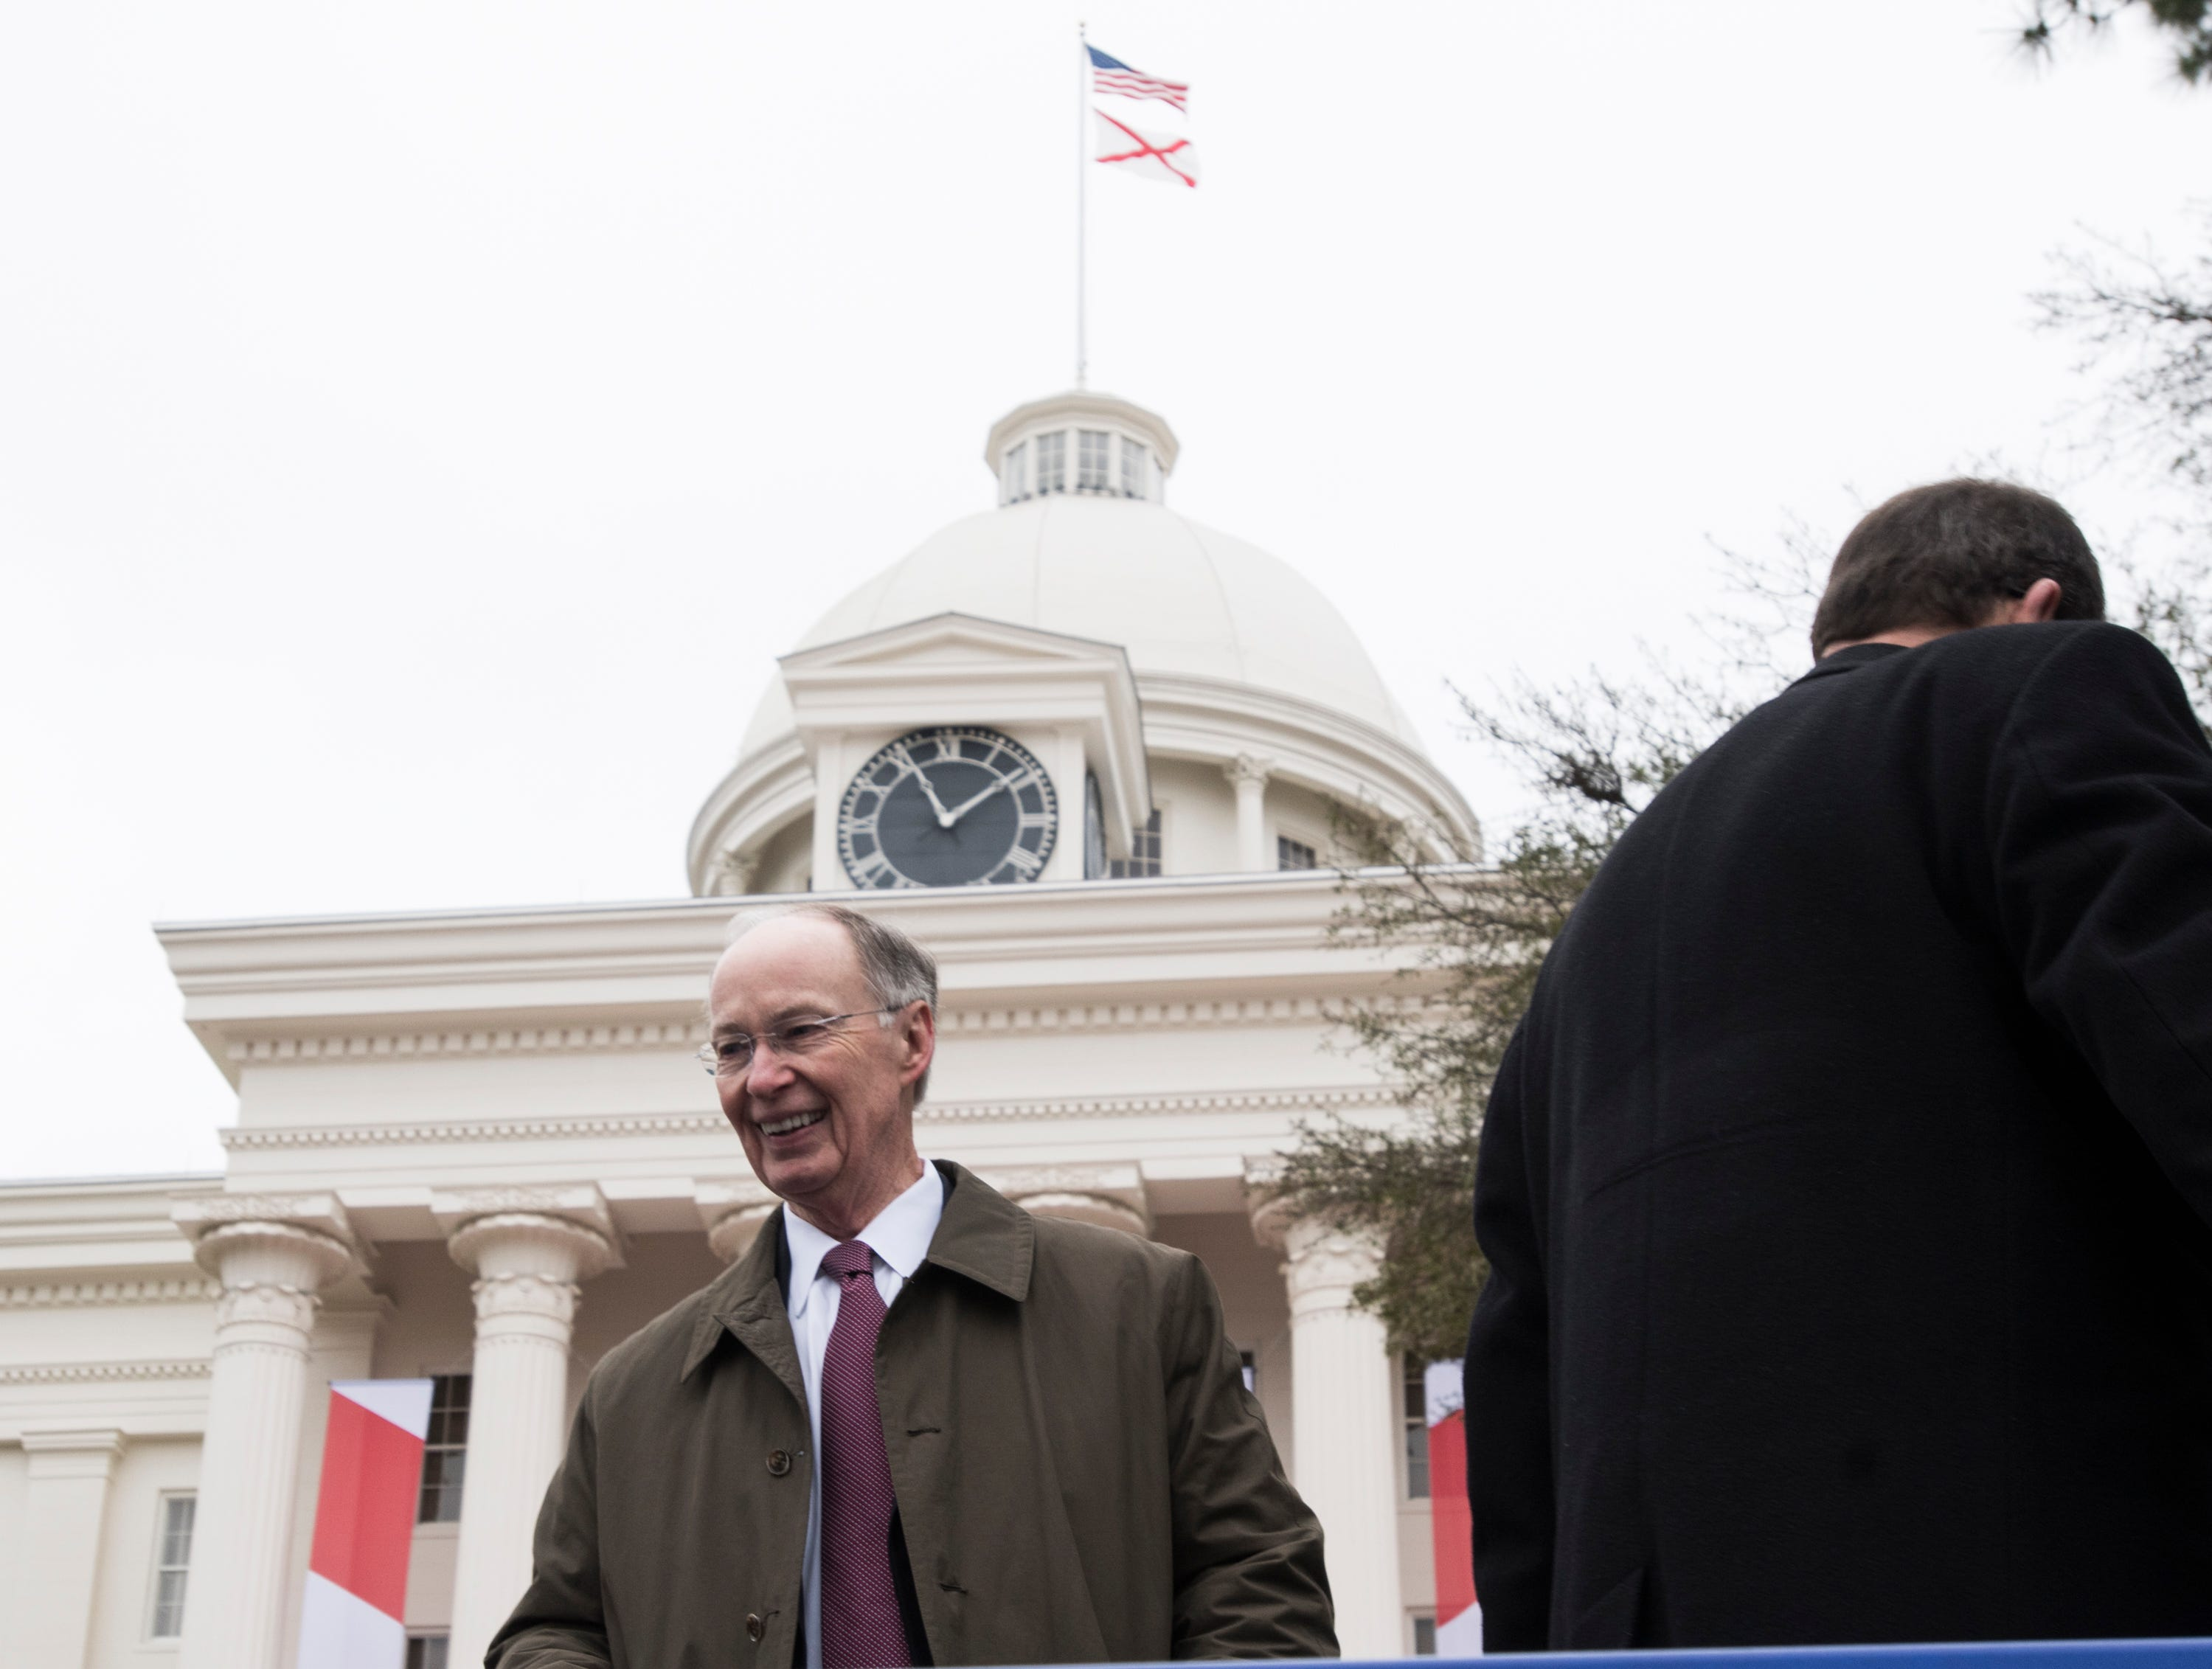 Former Alabama Gov. Robert Bentley during Inauguration  Day on the steps of the Alabama State Capitol in Montgomery, Ala., on Monday, Jan. 14, 2019.